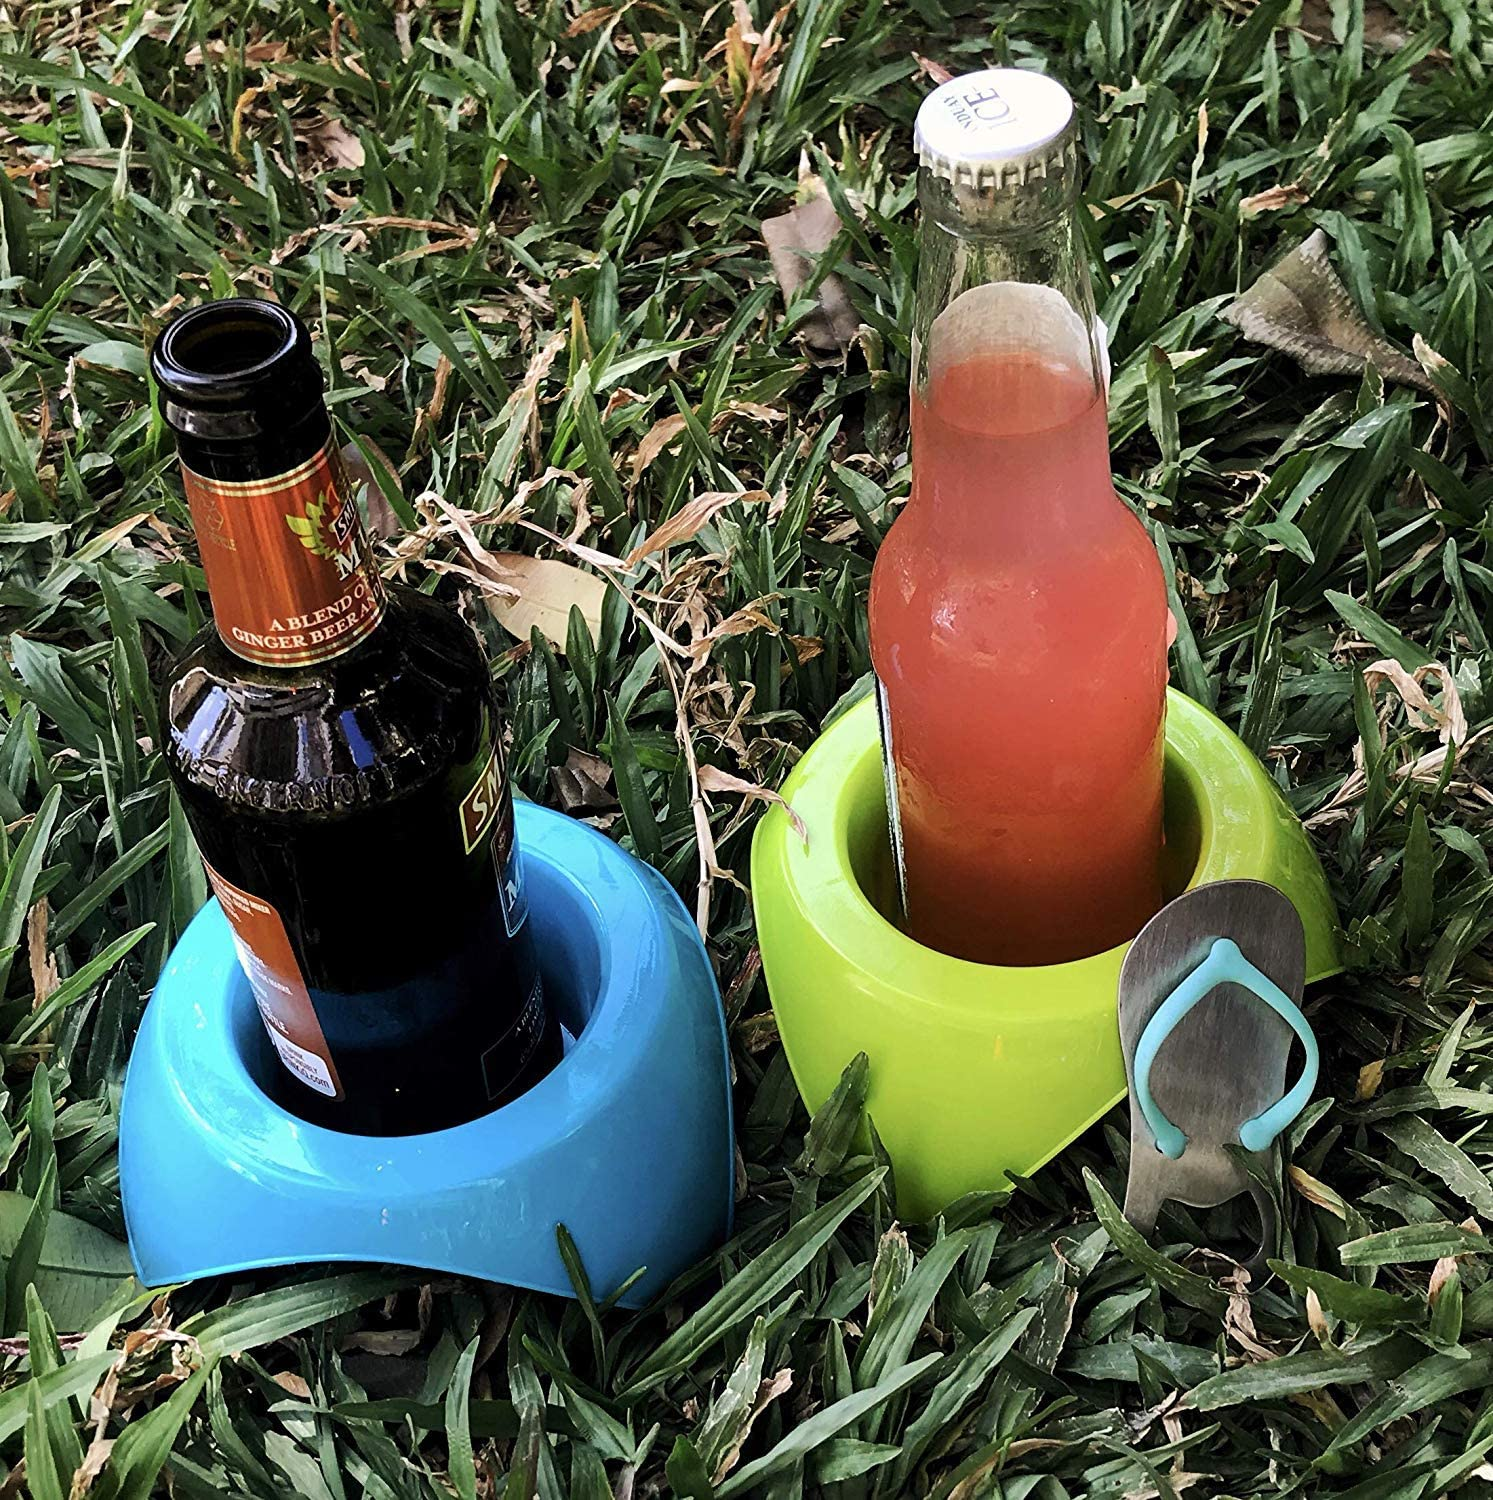 Sand Beach Cup Holders .Sand Beach Cup Holders Electronic and Snack Holder Set of 4 Portable//Stack-able Coasters Portable Sand Coaster.